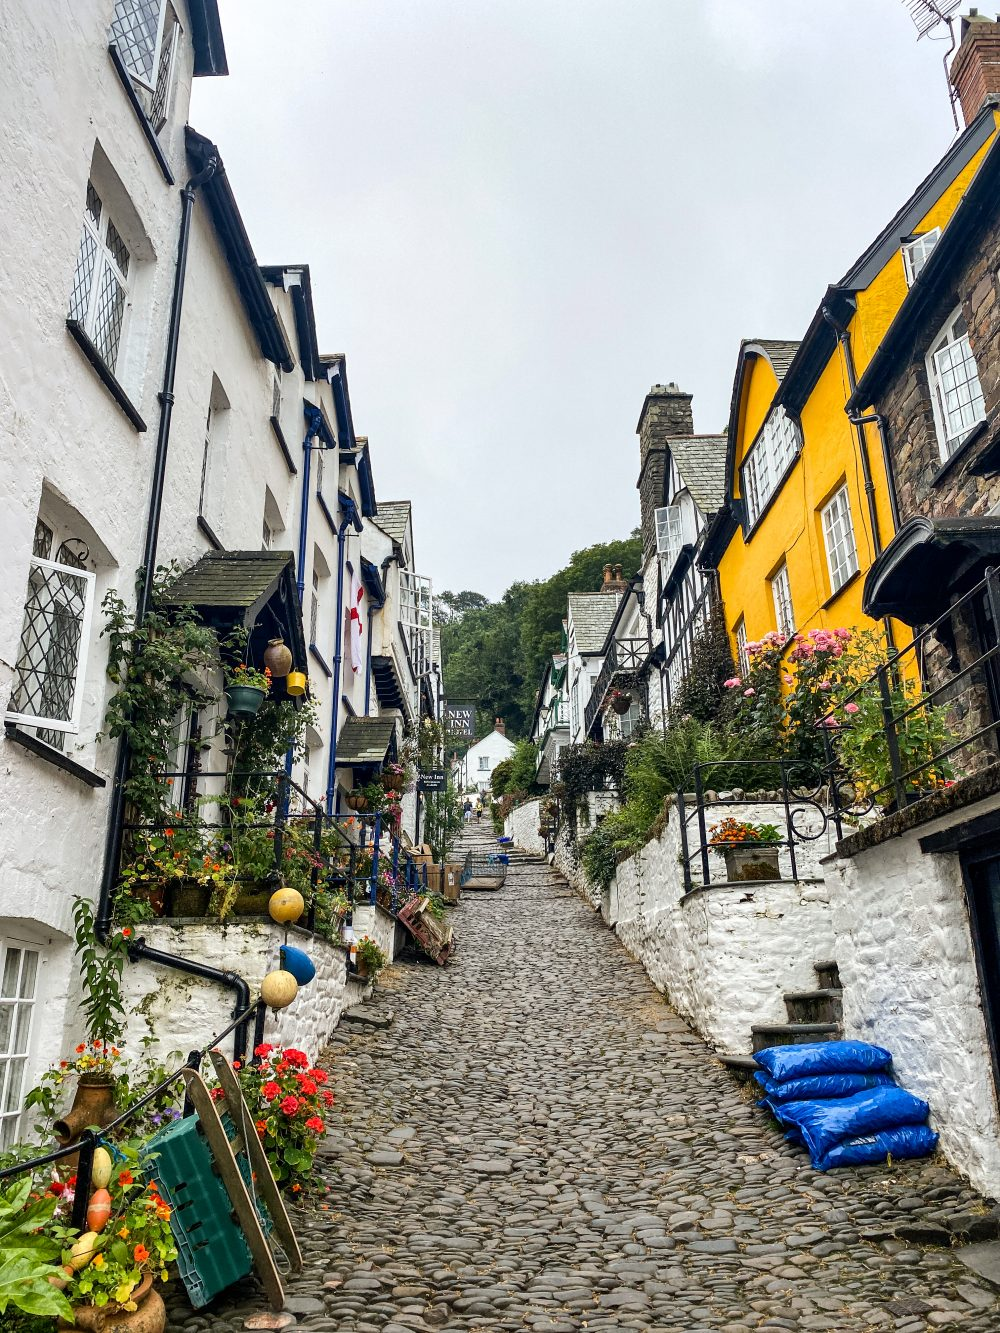 cobbled streets of Clovelly's hill with beautiful painted white and yellow houses lining each side